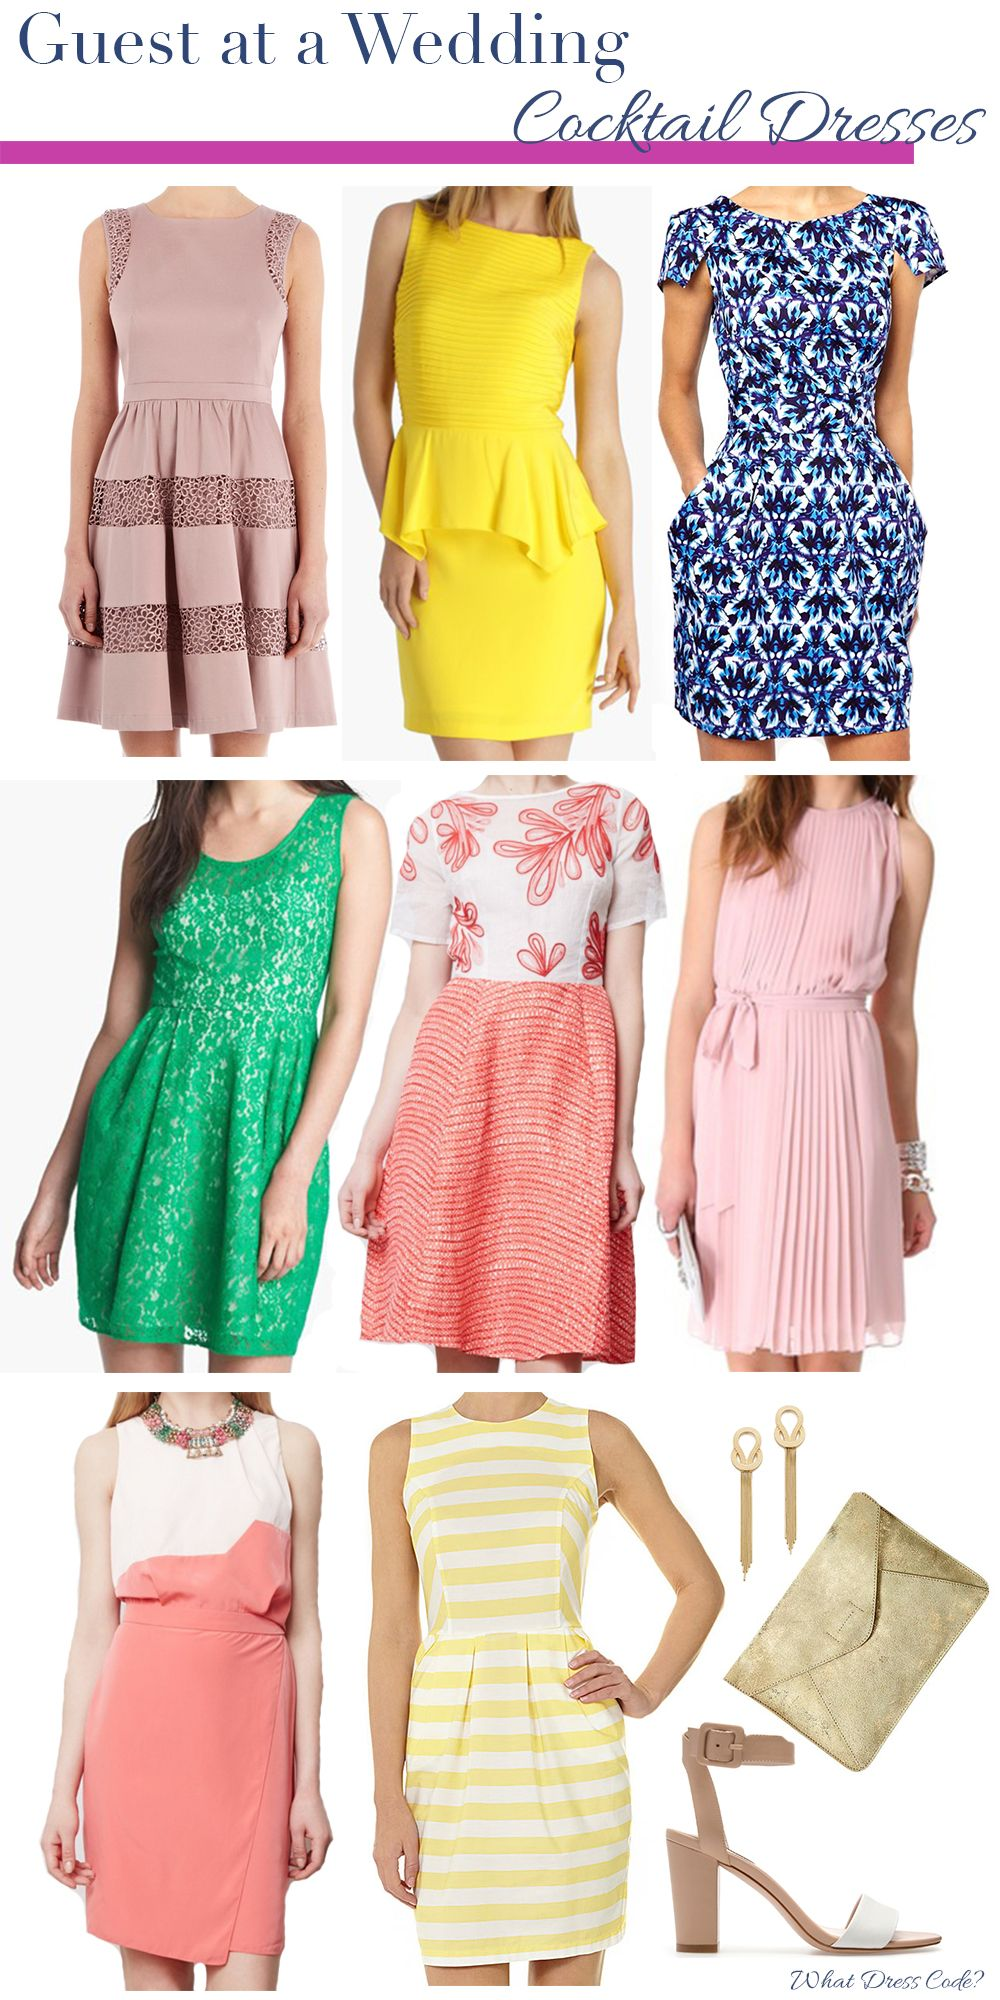 What to Wear to a Wedding | Cocktail Dresses #weddingattire ...